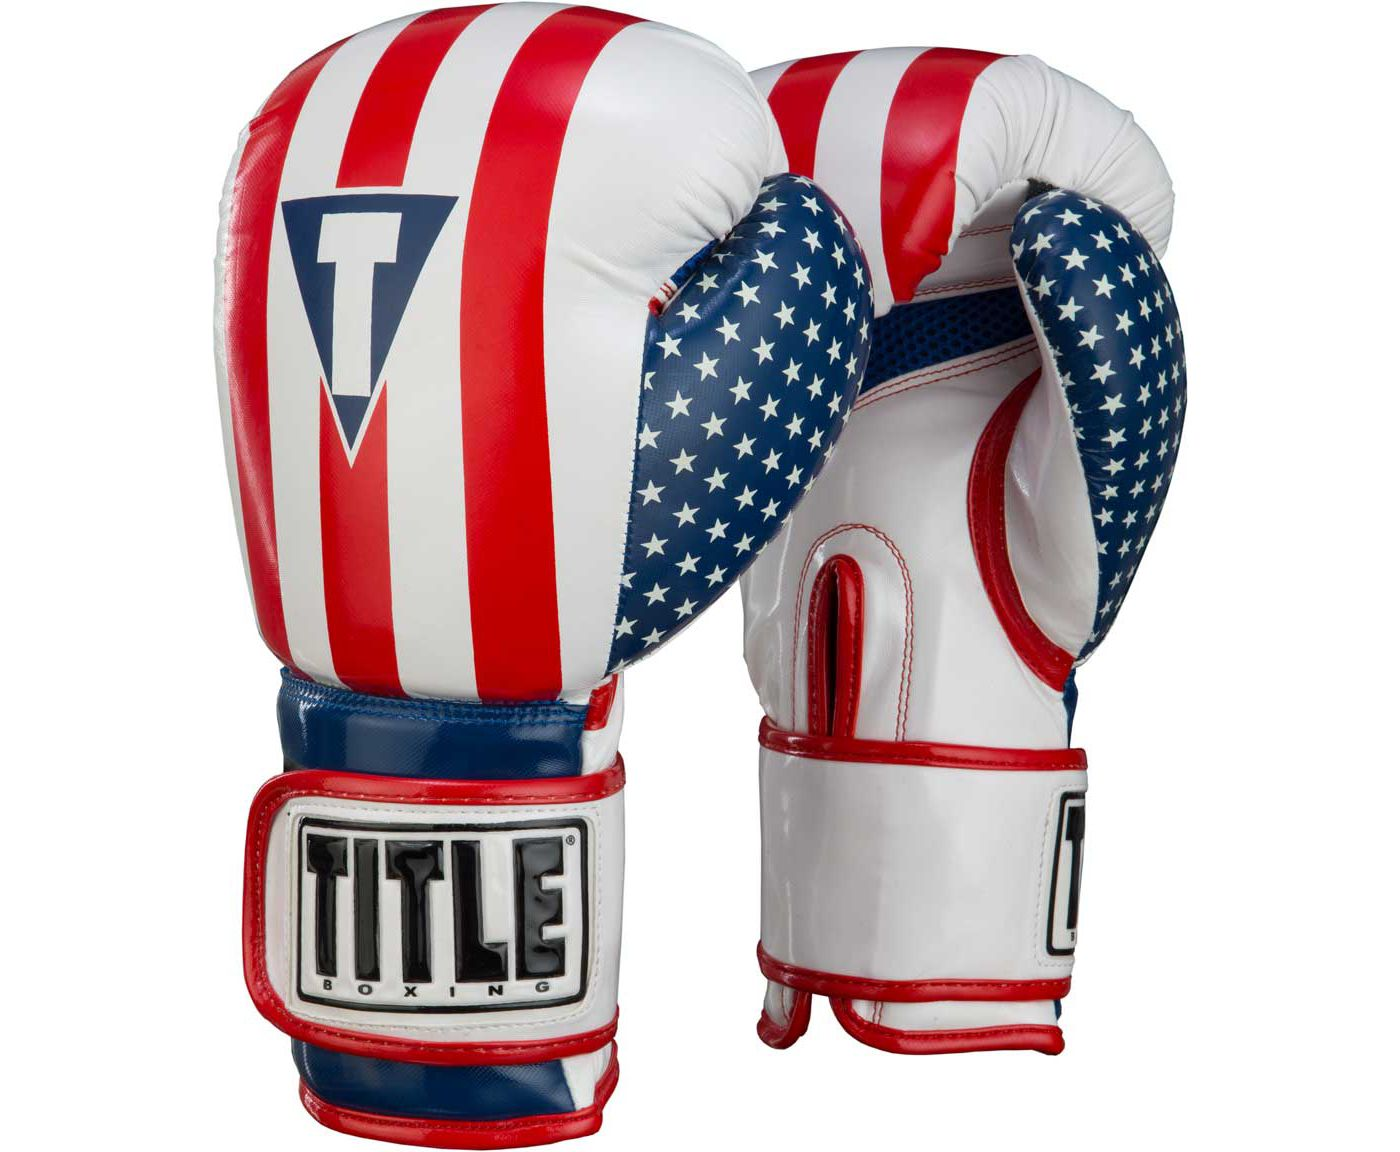 TITLE Boxing Infused Foam Combat USA Training Gloves